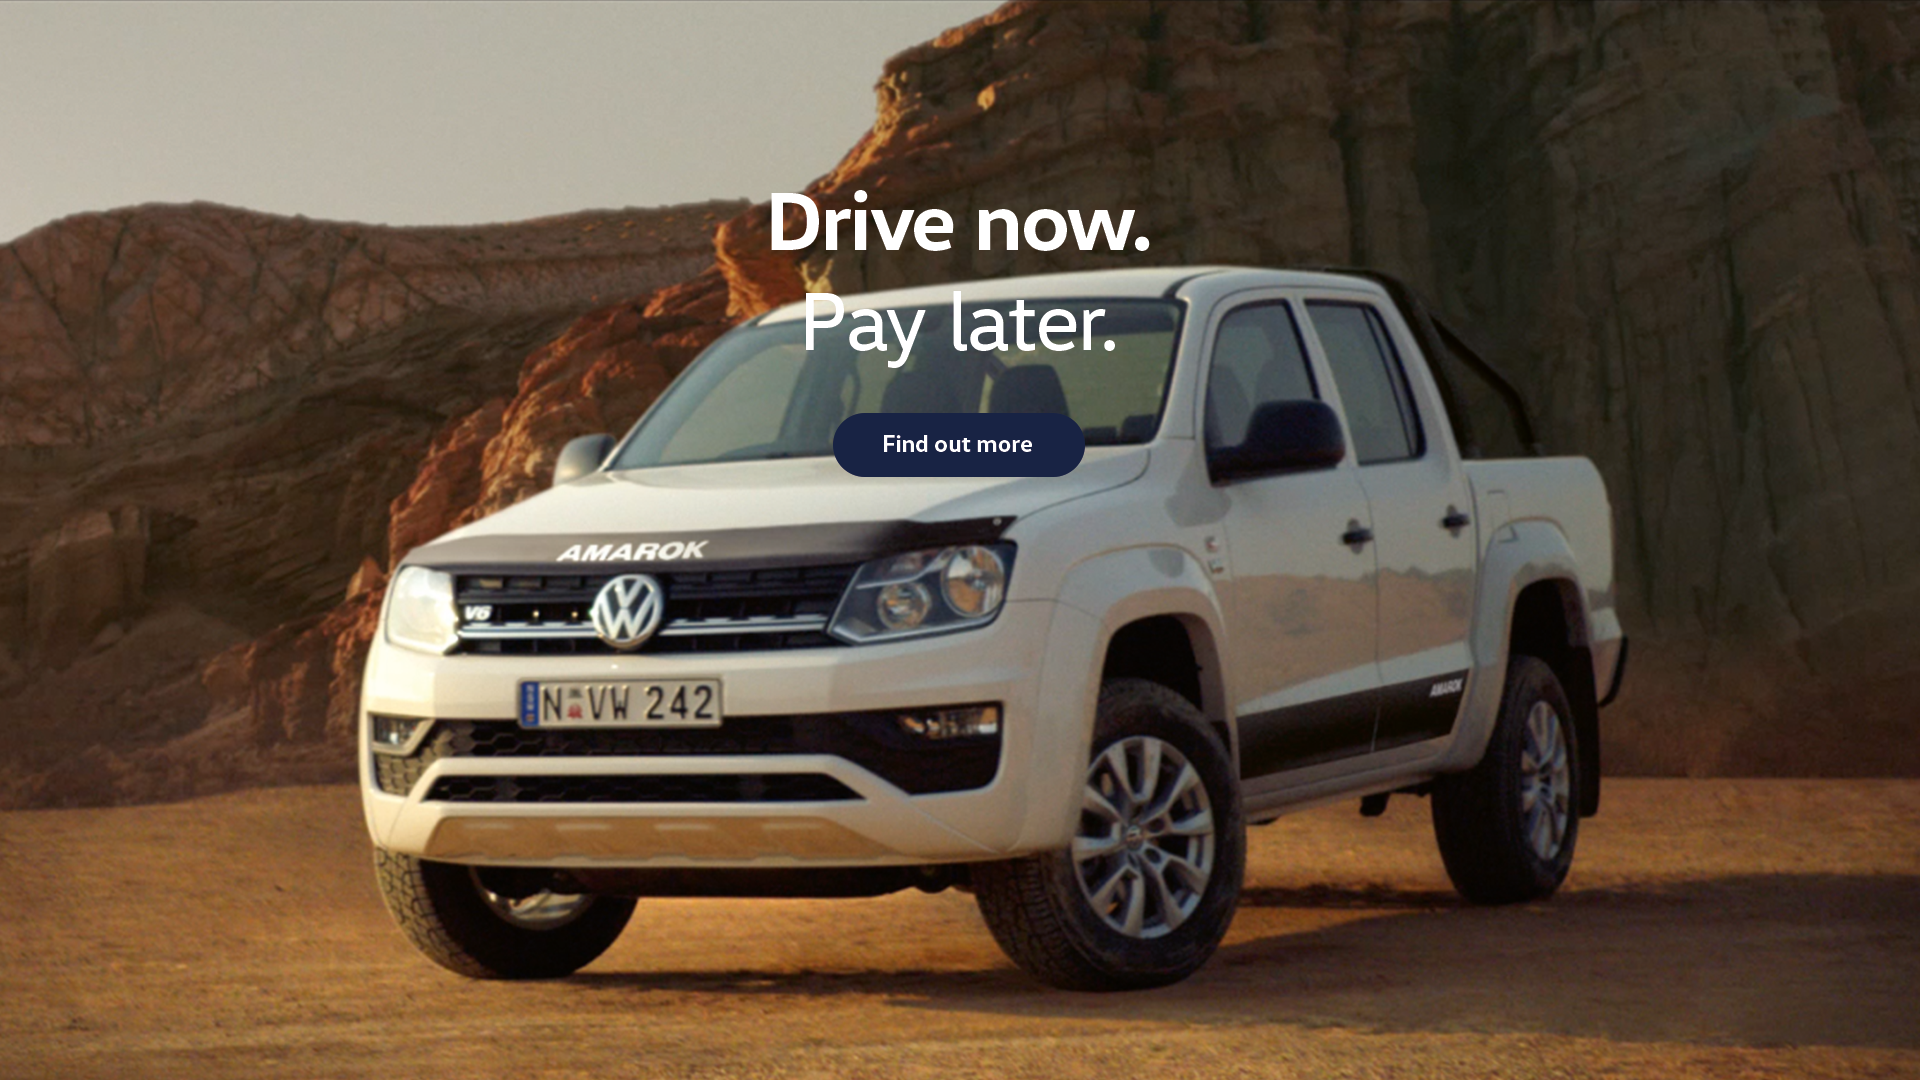 Volkswagen Amarok. Drive now. Pay later. Test drive today at Westpoint Volkswagen.